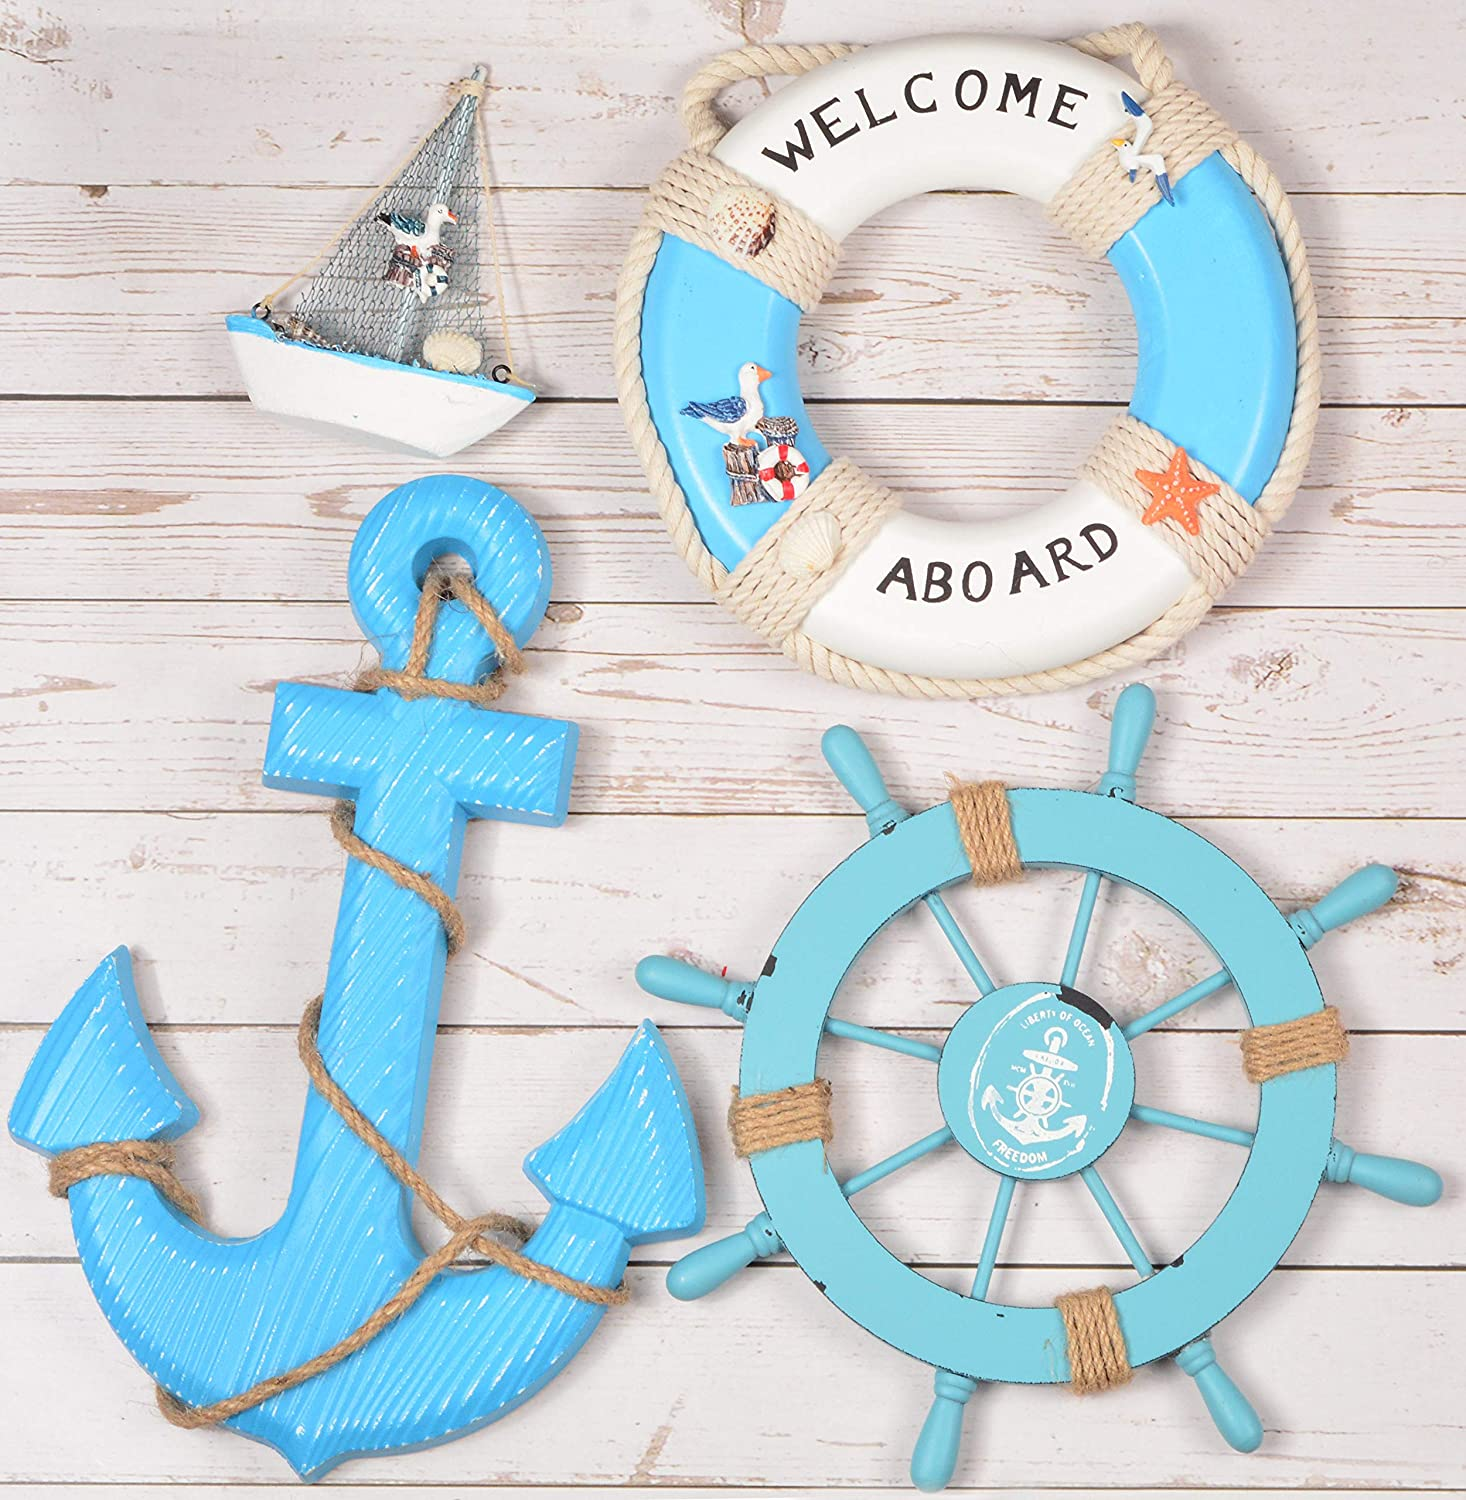 Wooden Nautical Lighthouse Anchor Wall Hanging Ornament, Beach Wooden Boat Ship Steering Wheel Wall Decor, Nautical Life Ring Wall and Door Hanging Ornament Plaque, Welcome Abroad Life Ring (Blue)